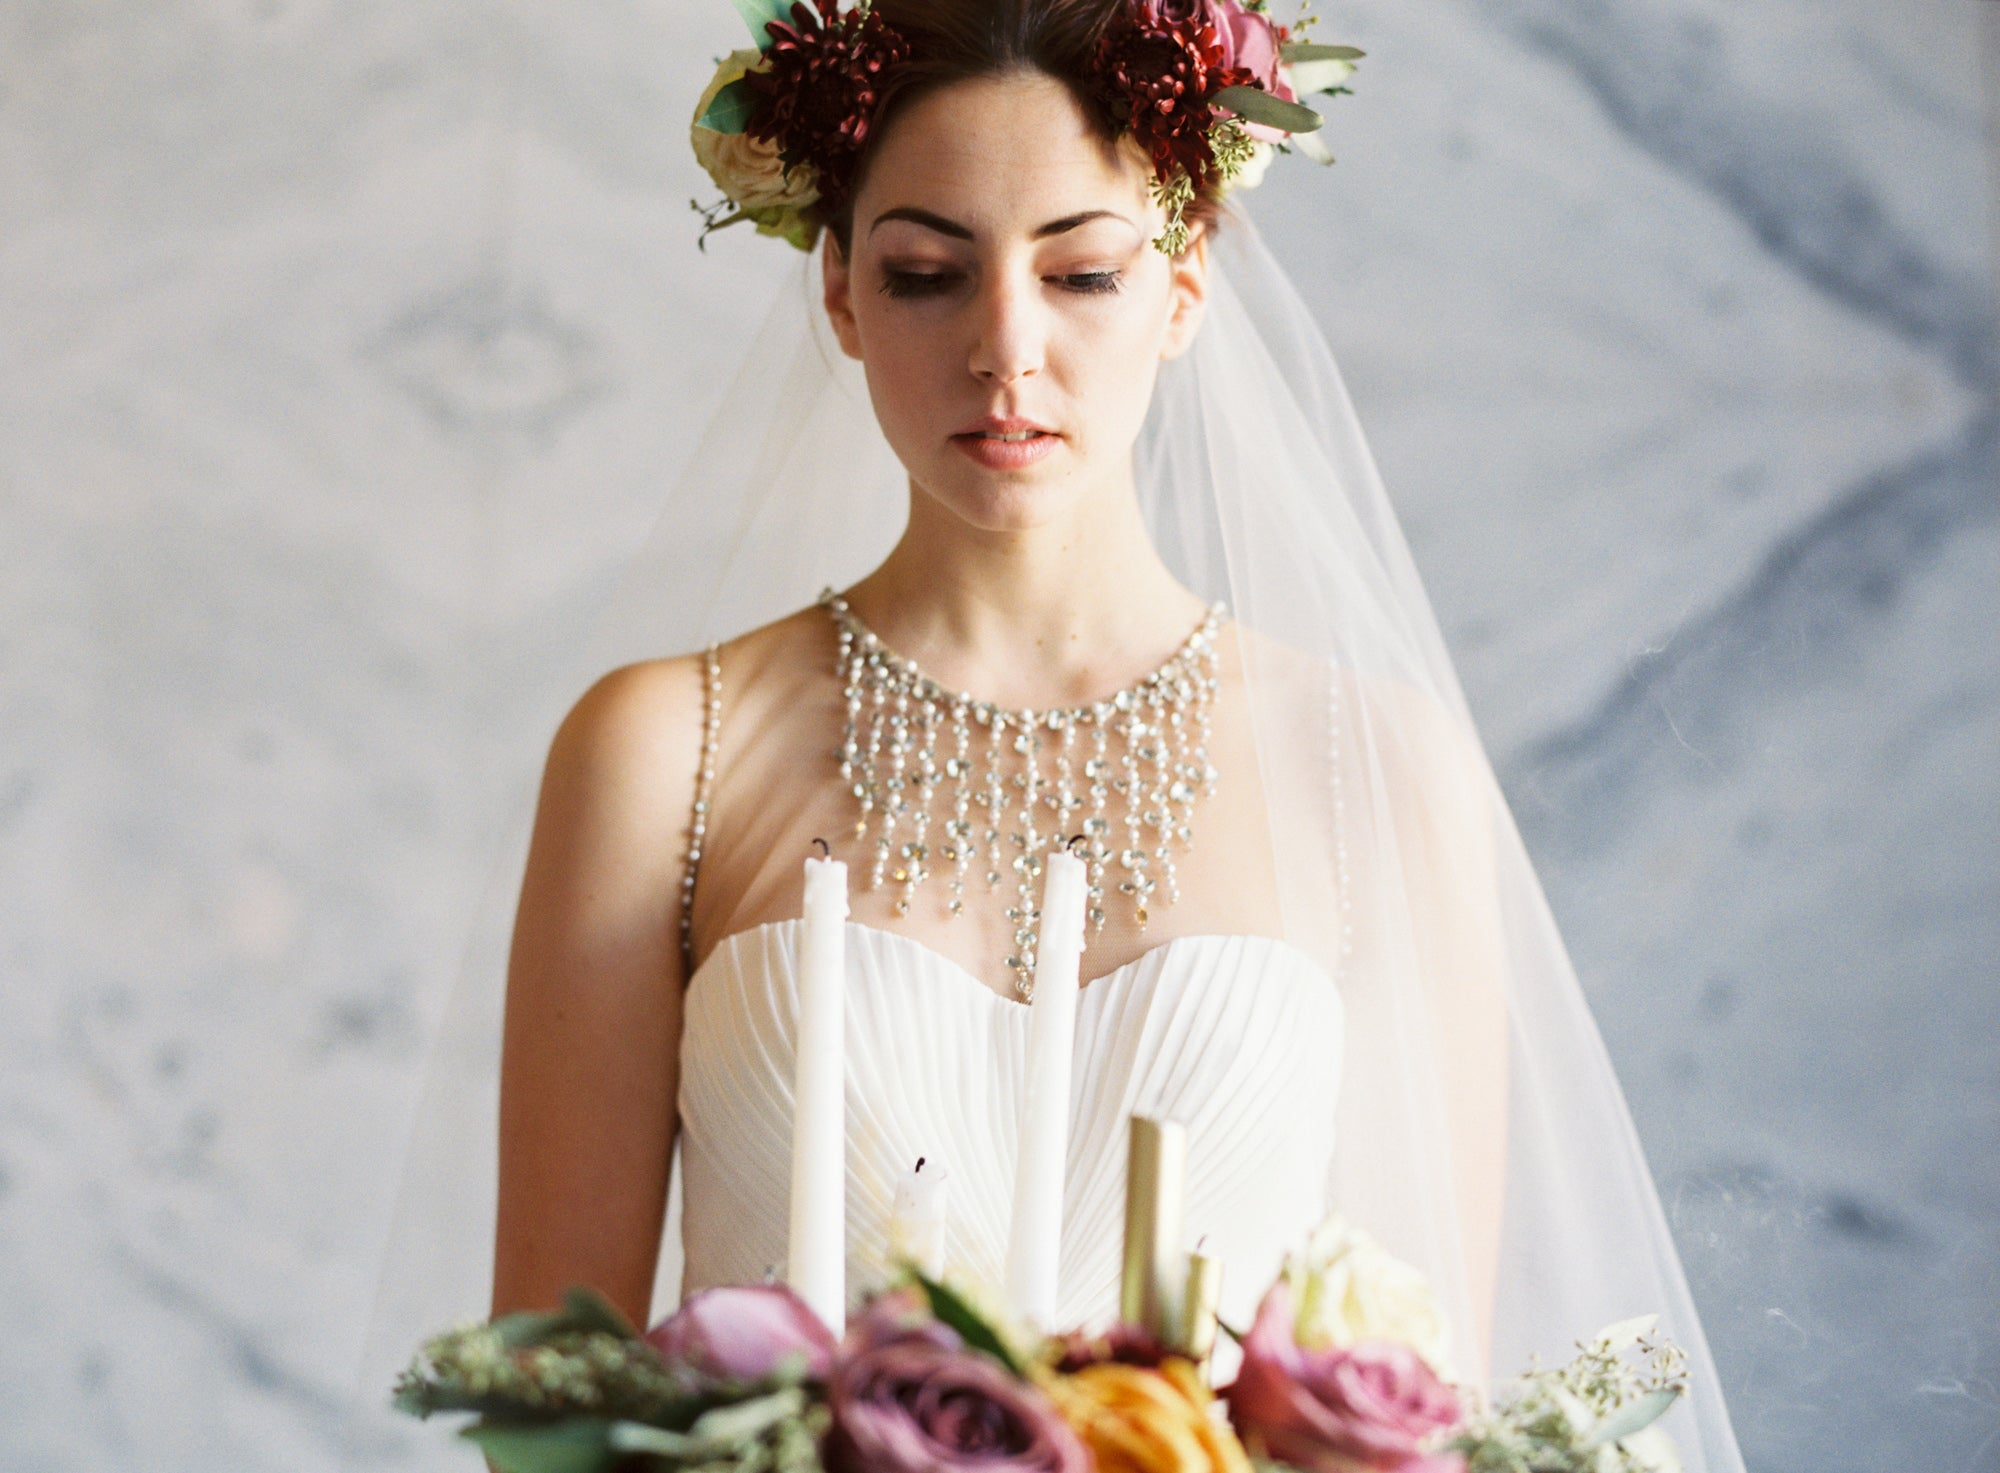 Bride with flower wreath crown and veil holding candles